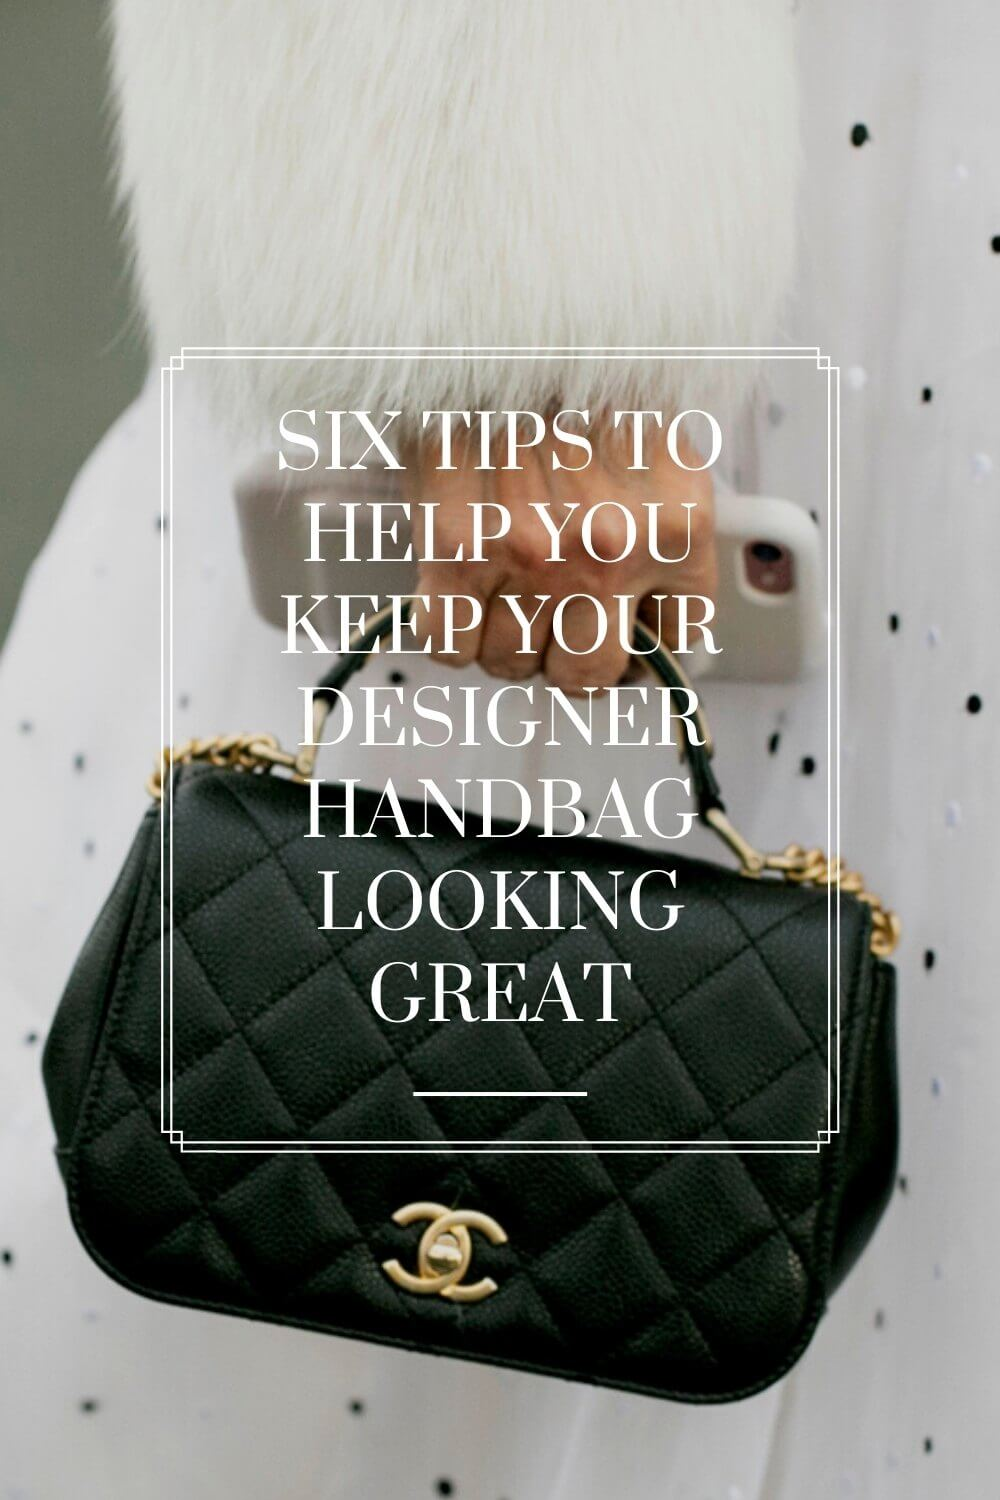 Six tips to help you keep your designer handbag looking great